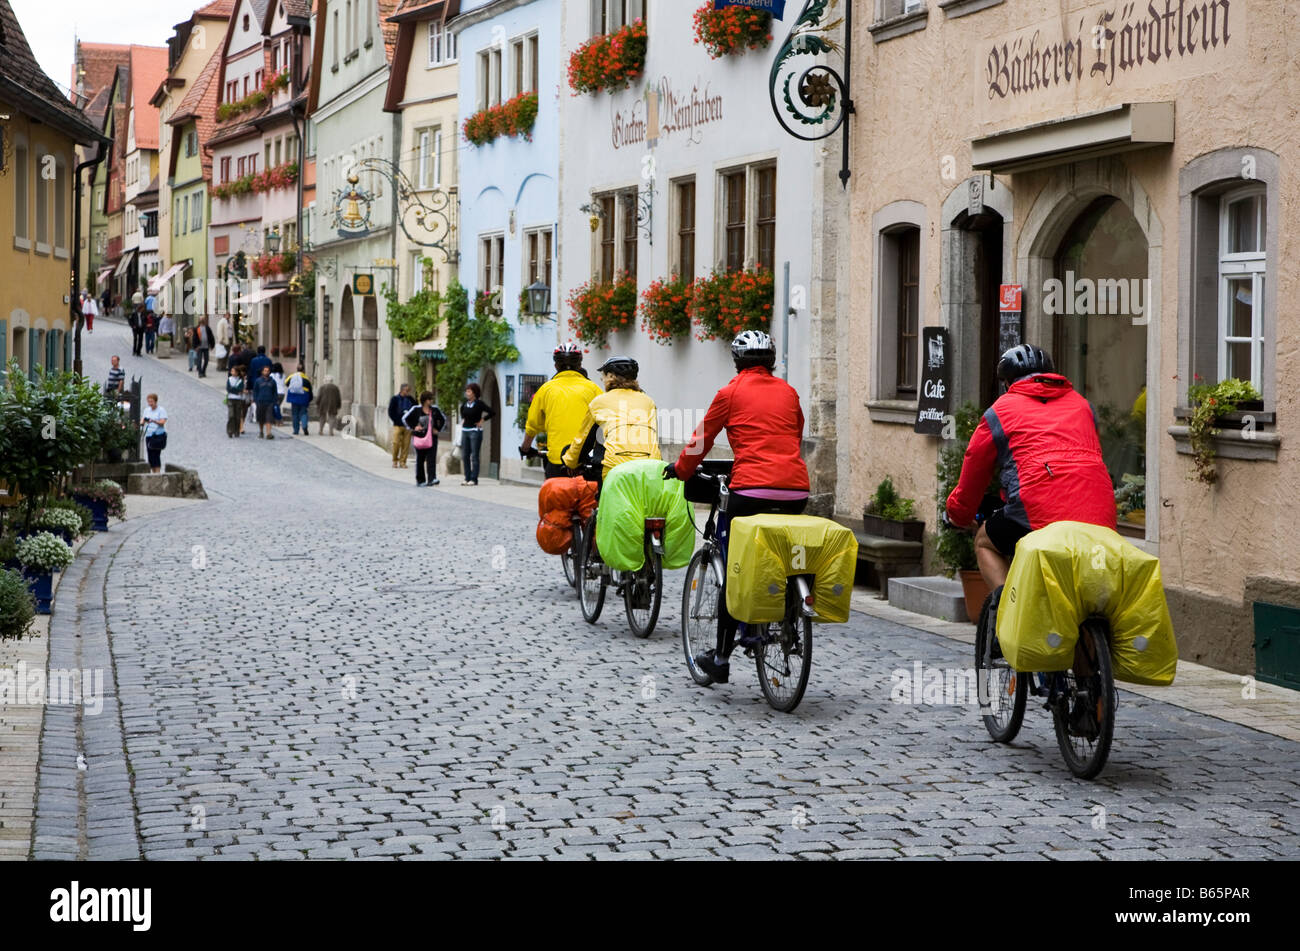 Cyclists wearing wet weather ponchos entering medieval town of Rothenburg Germany - Stock Image